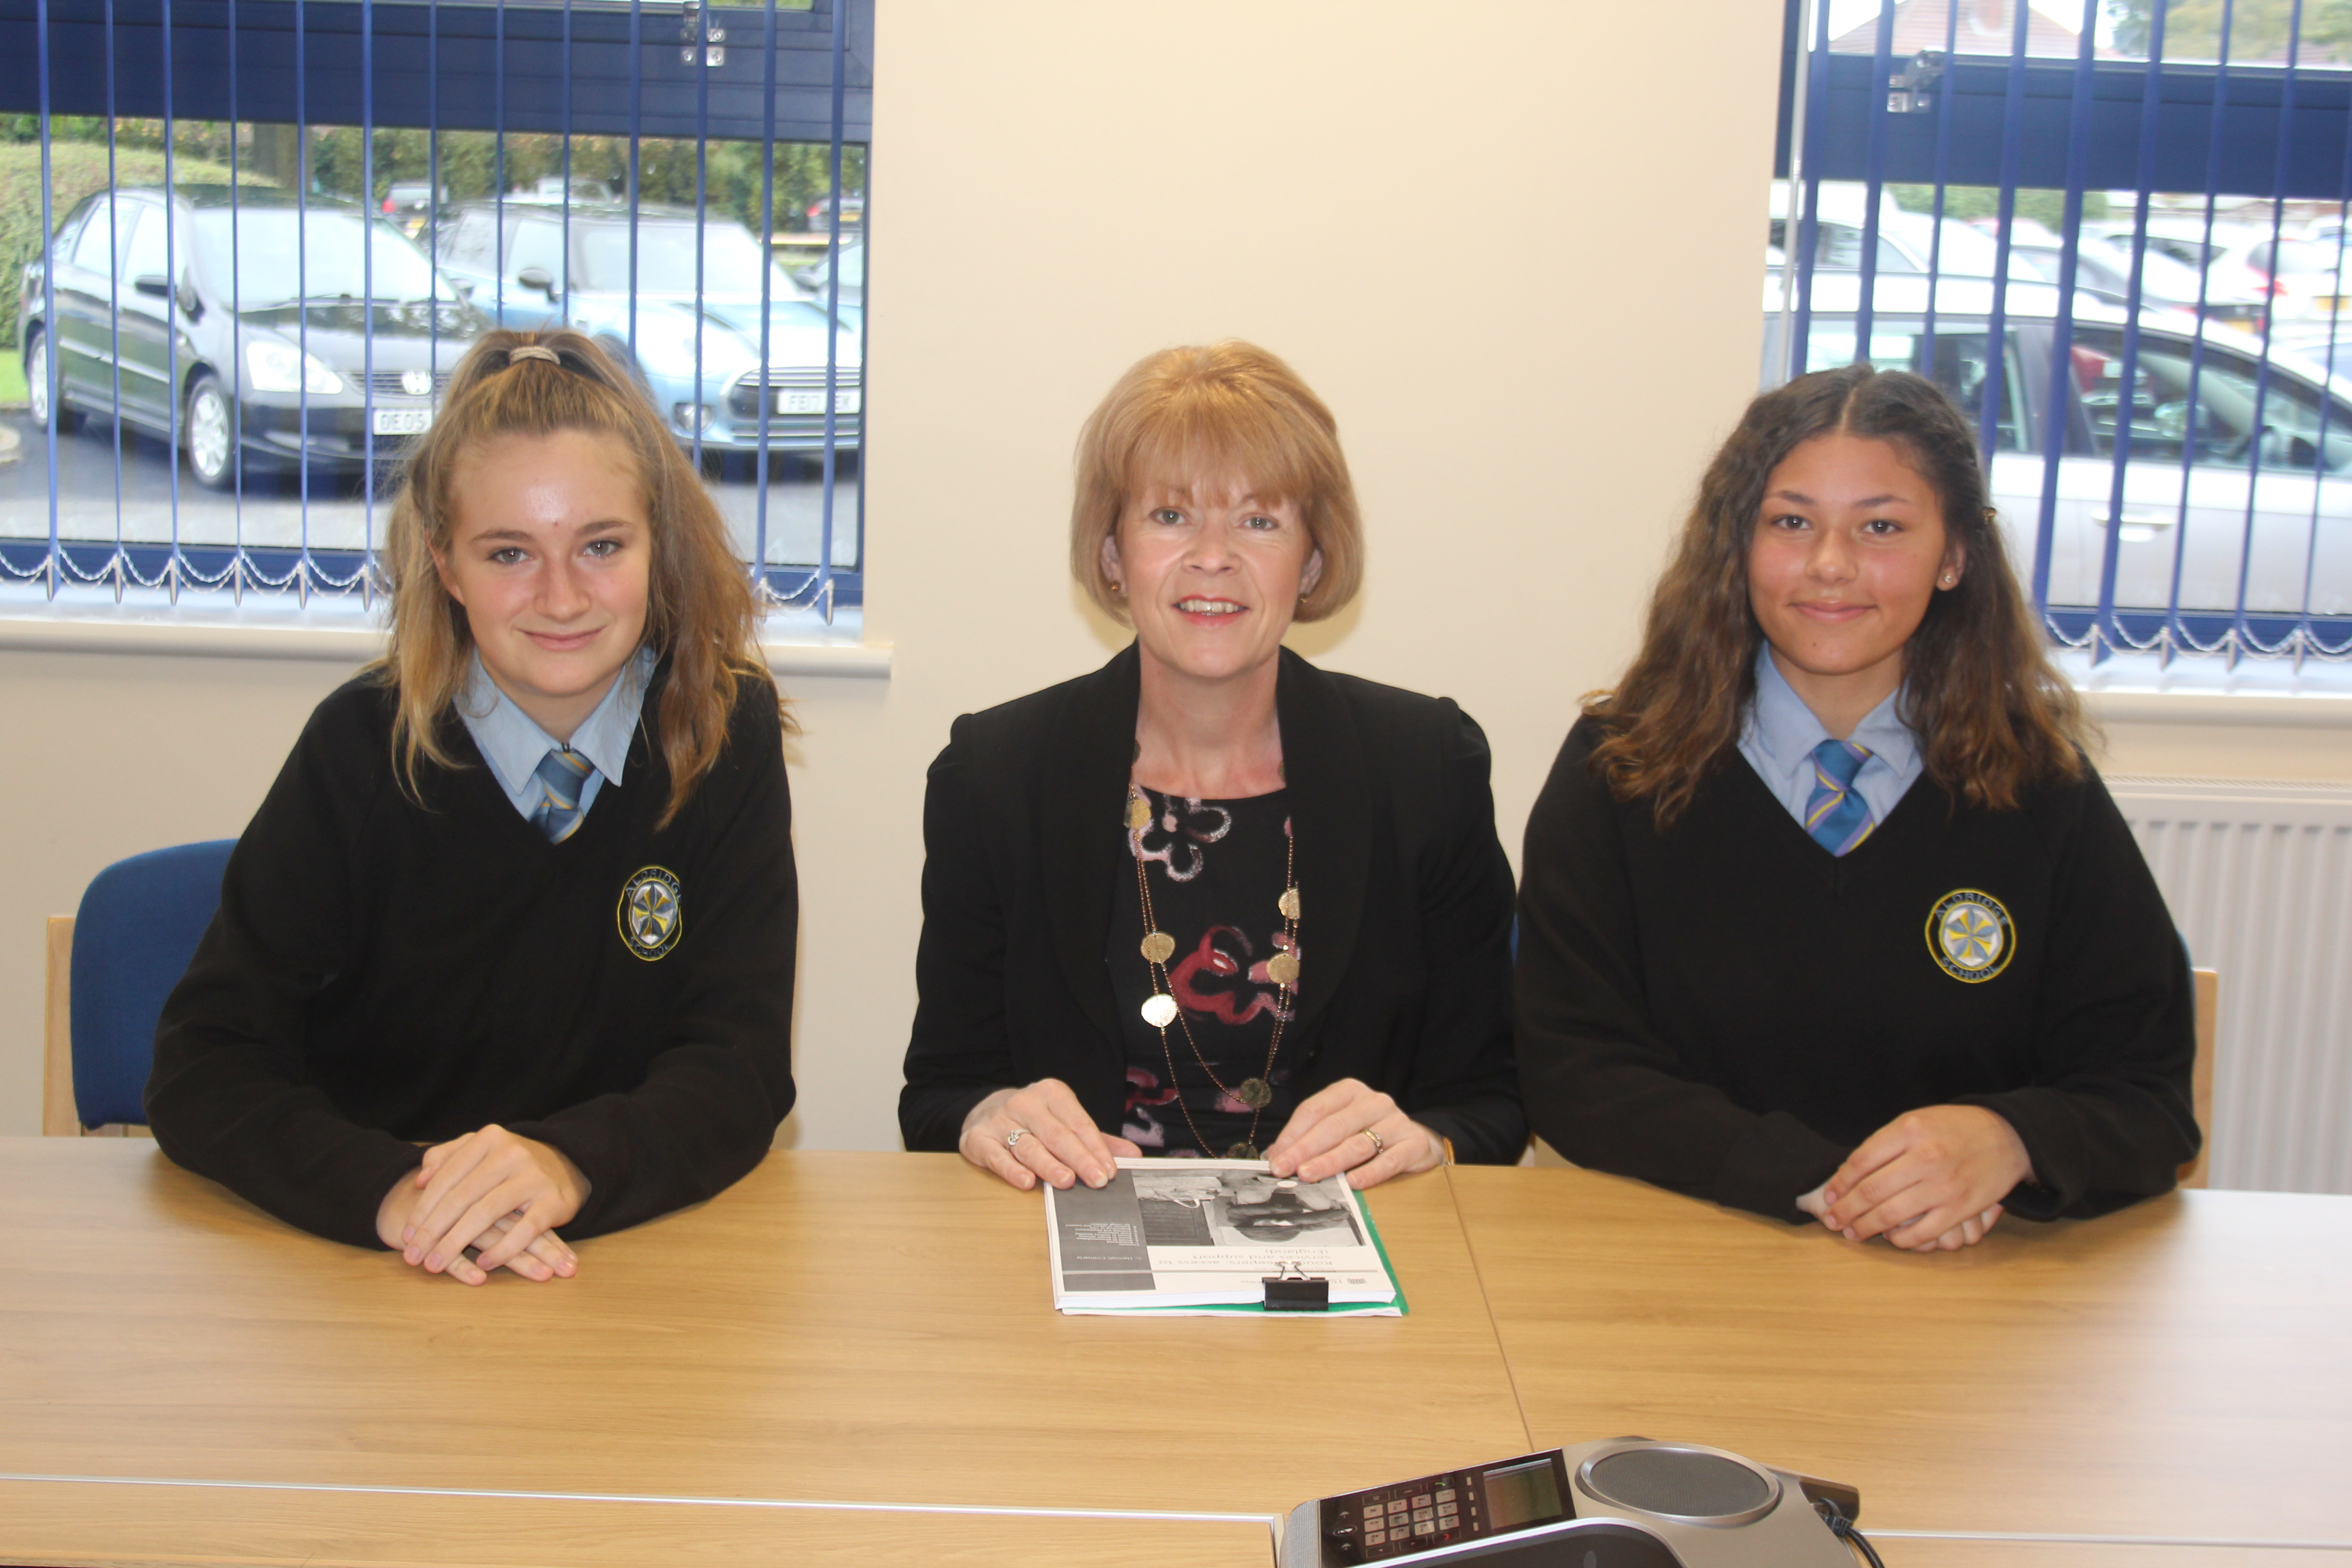 Discussion and interview with Citizenship Students at Aldridge School